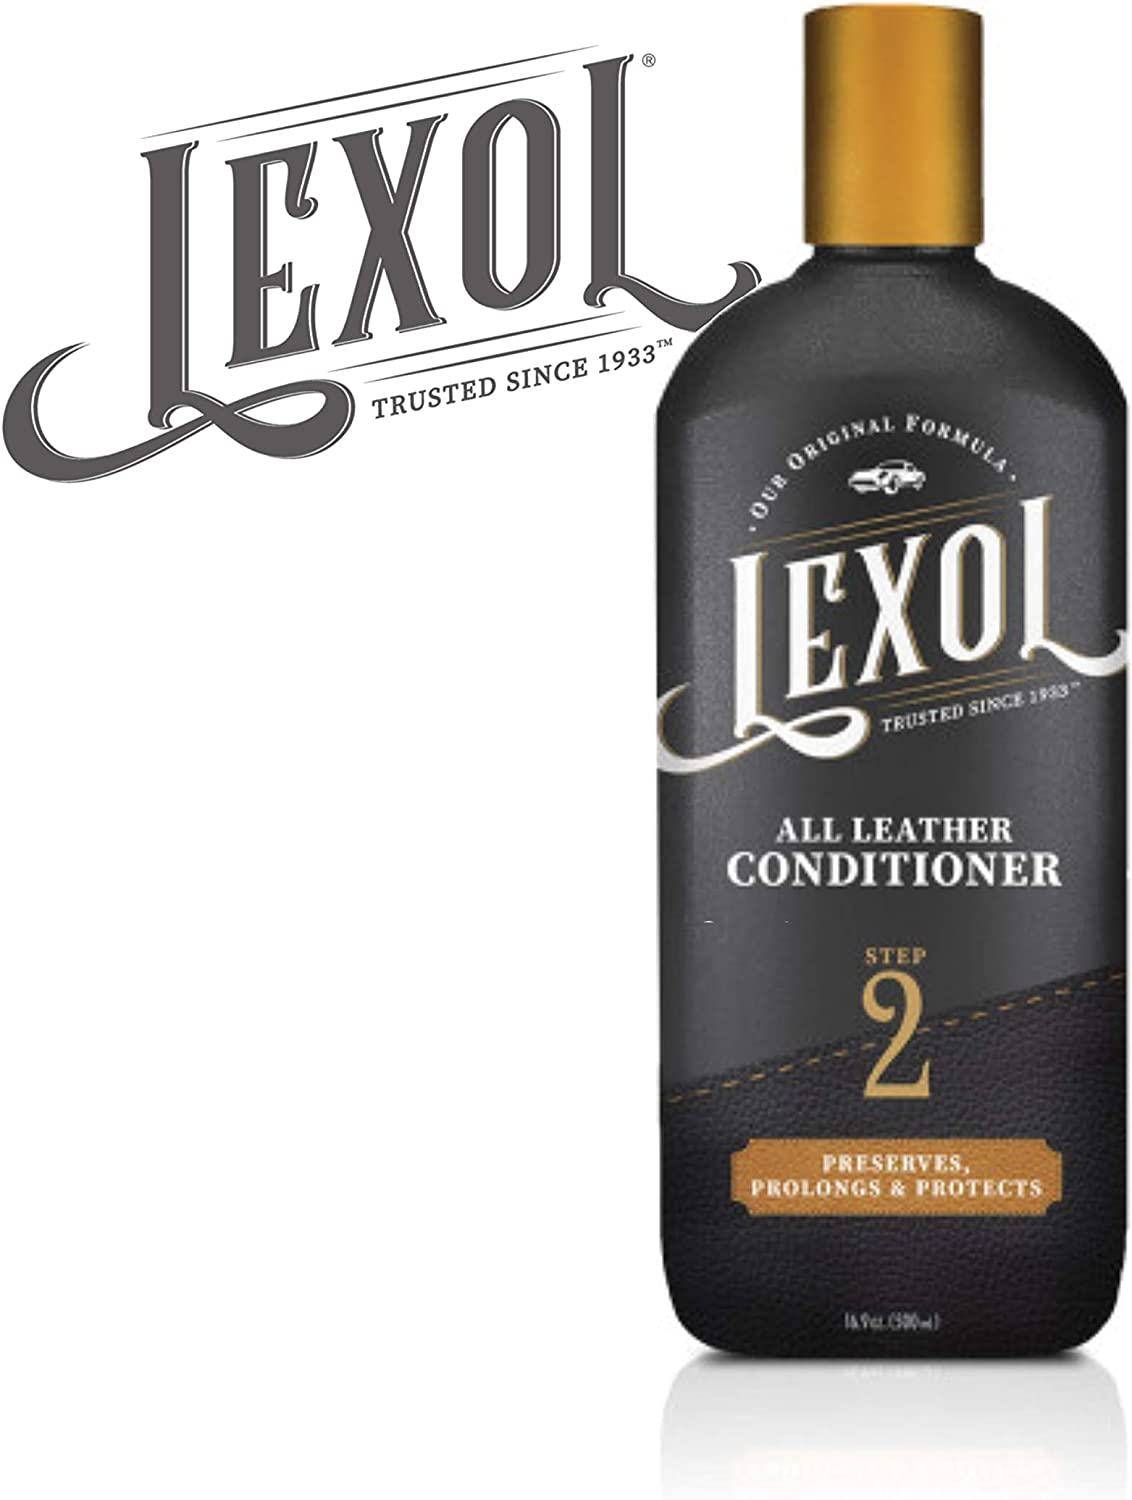 Lexol Leather Conditioner, 16.9 oz Best Cleaner and Conditioning Since 1933-For Use on Apparel, Furniture, Auto Interiors, Shoes, Bags and More